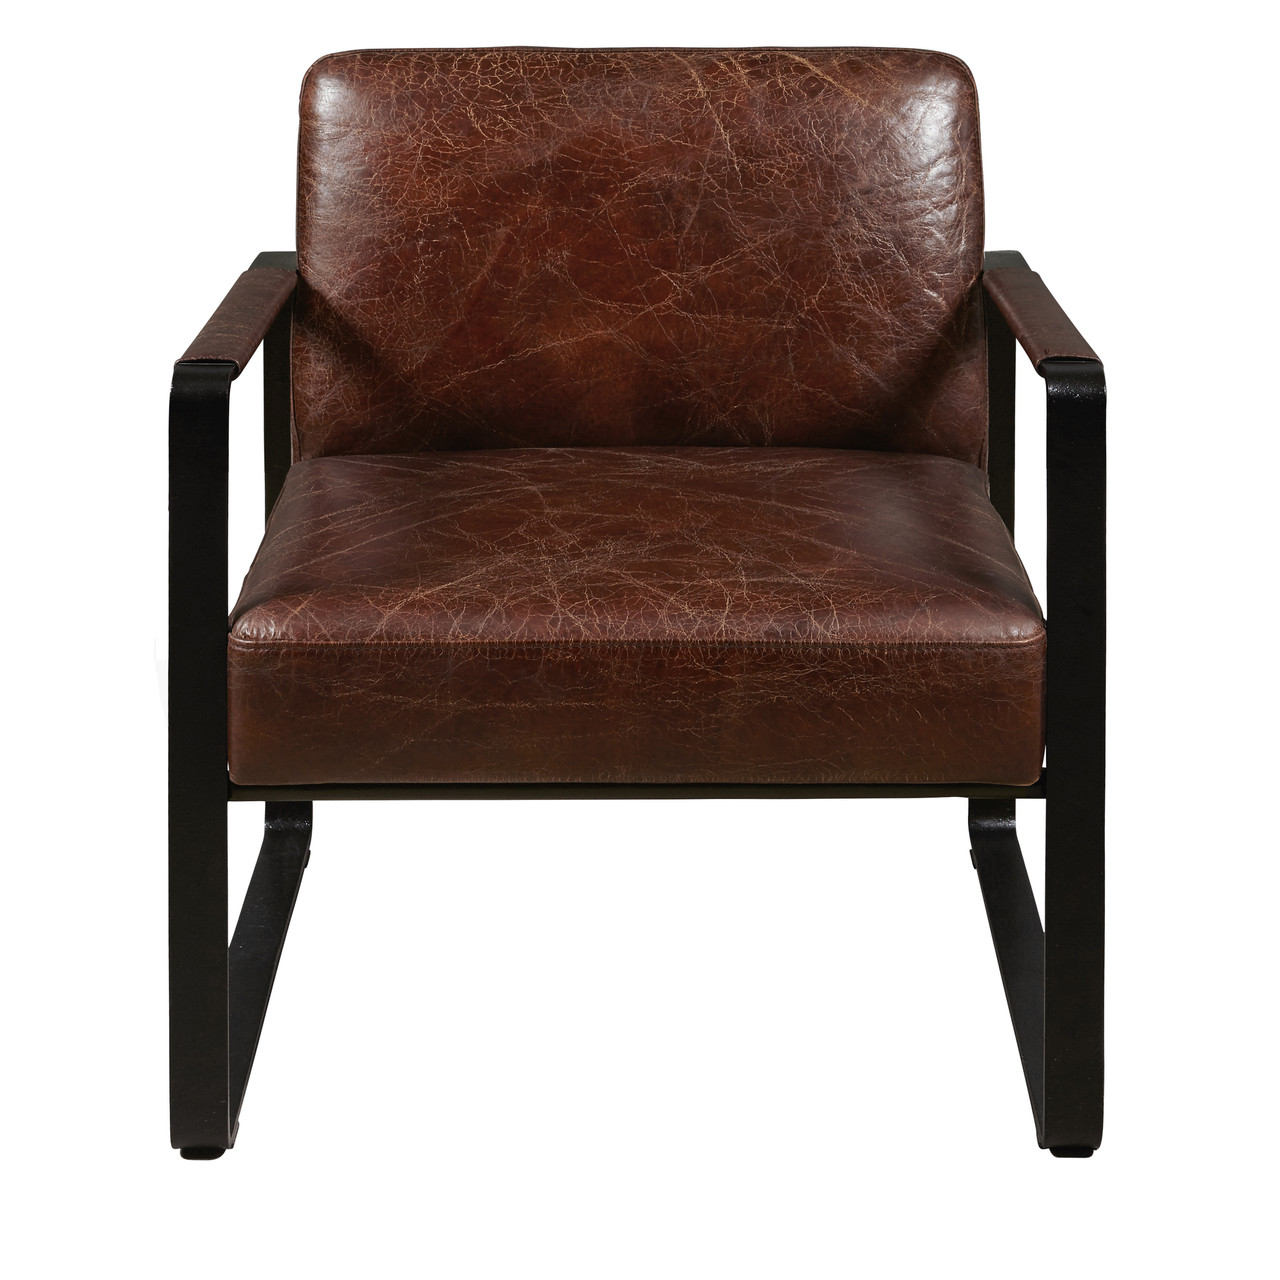 Delancy Arm Chair   Distressed Brown Leather